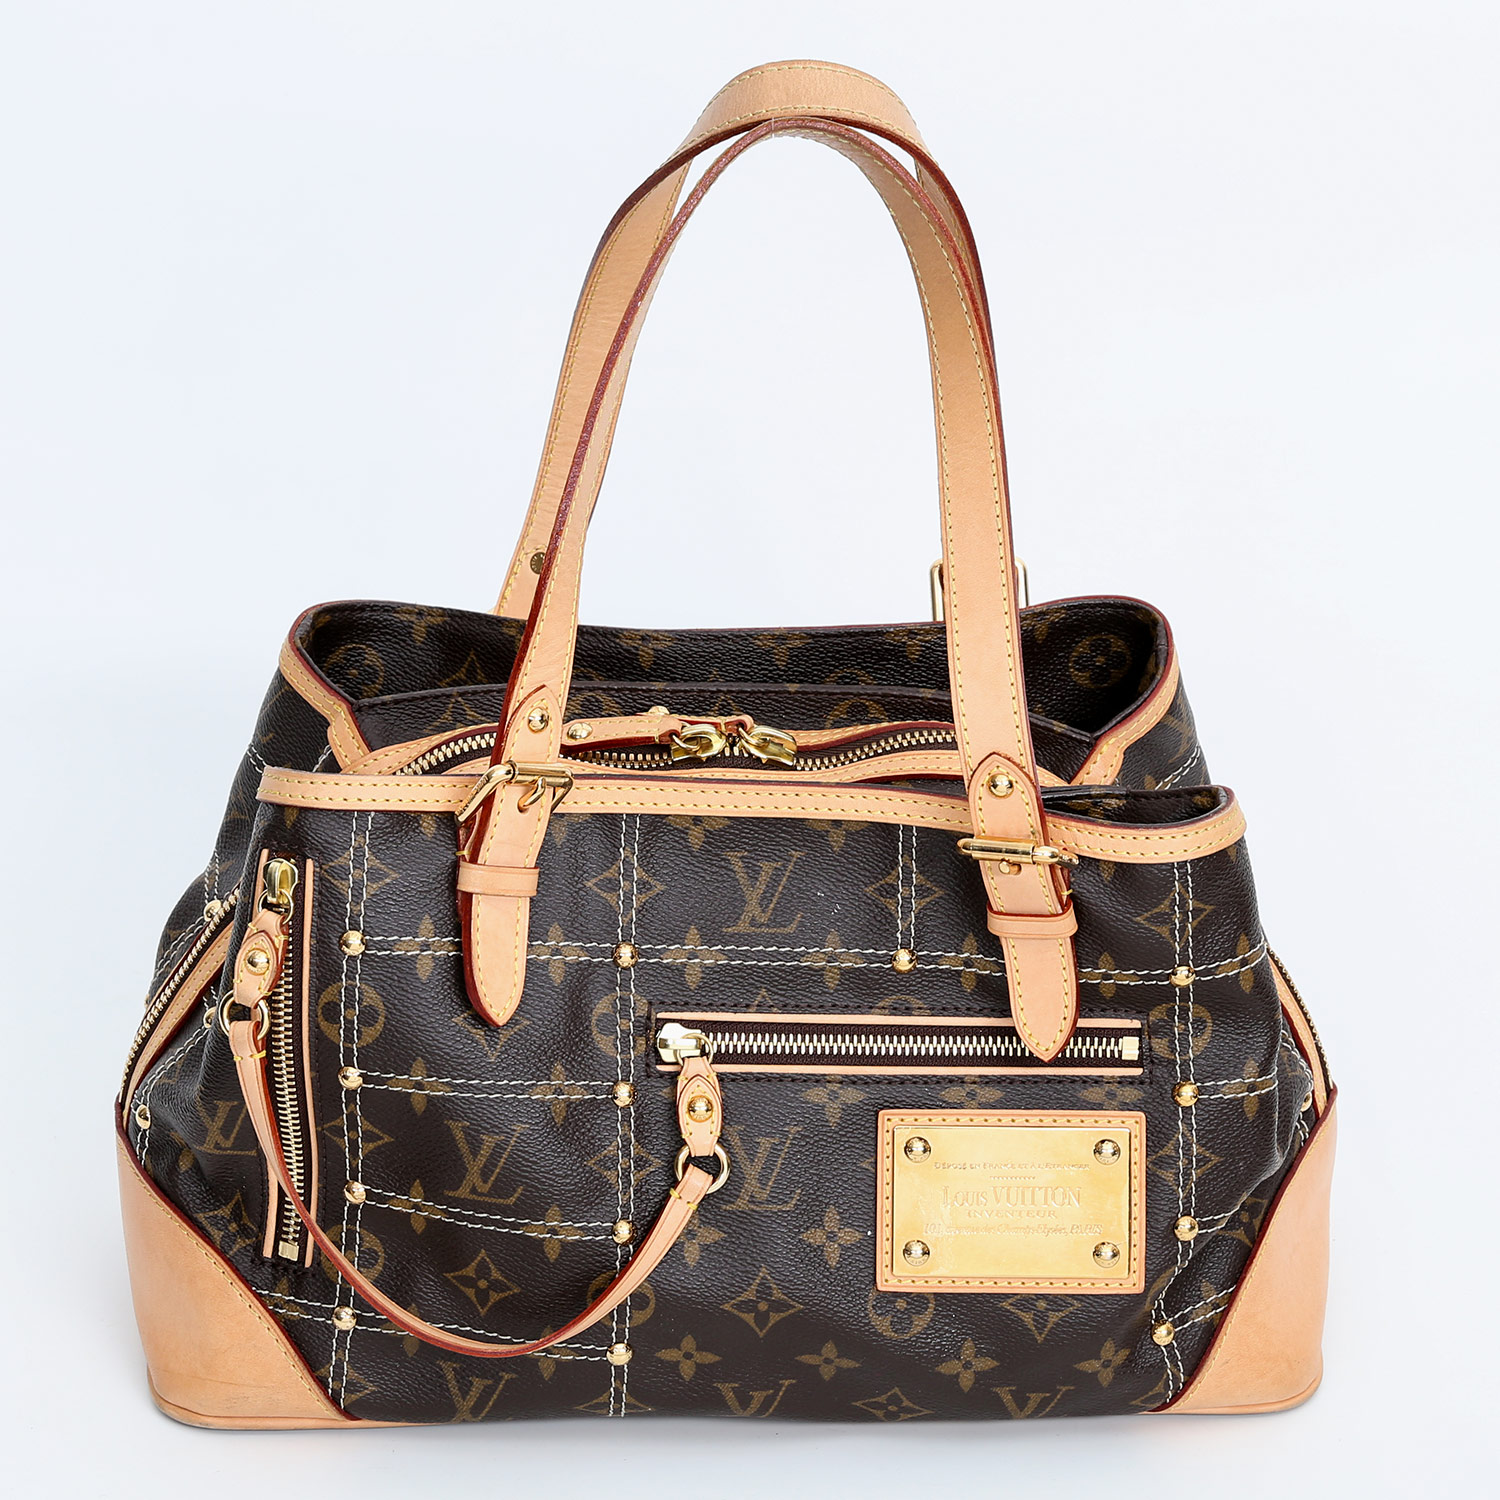 louis vuitton seltene henkeltasche riveting satchel bag koll 2007 limited edition letzter. Black Bedroom Furniture Sets. Home Design Ideas